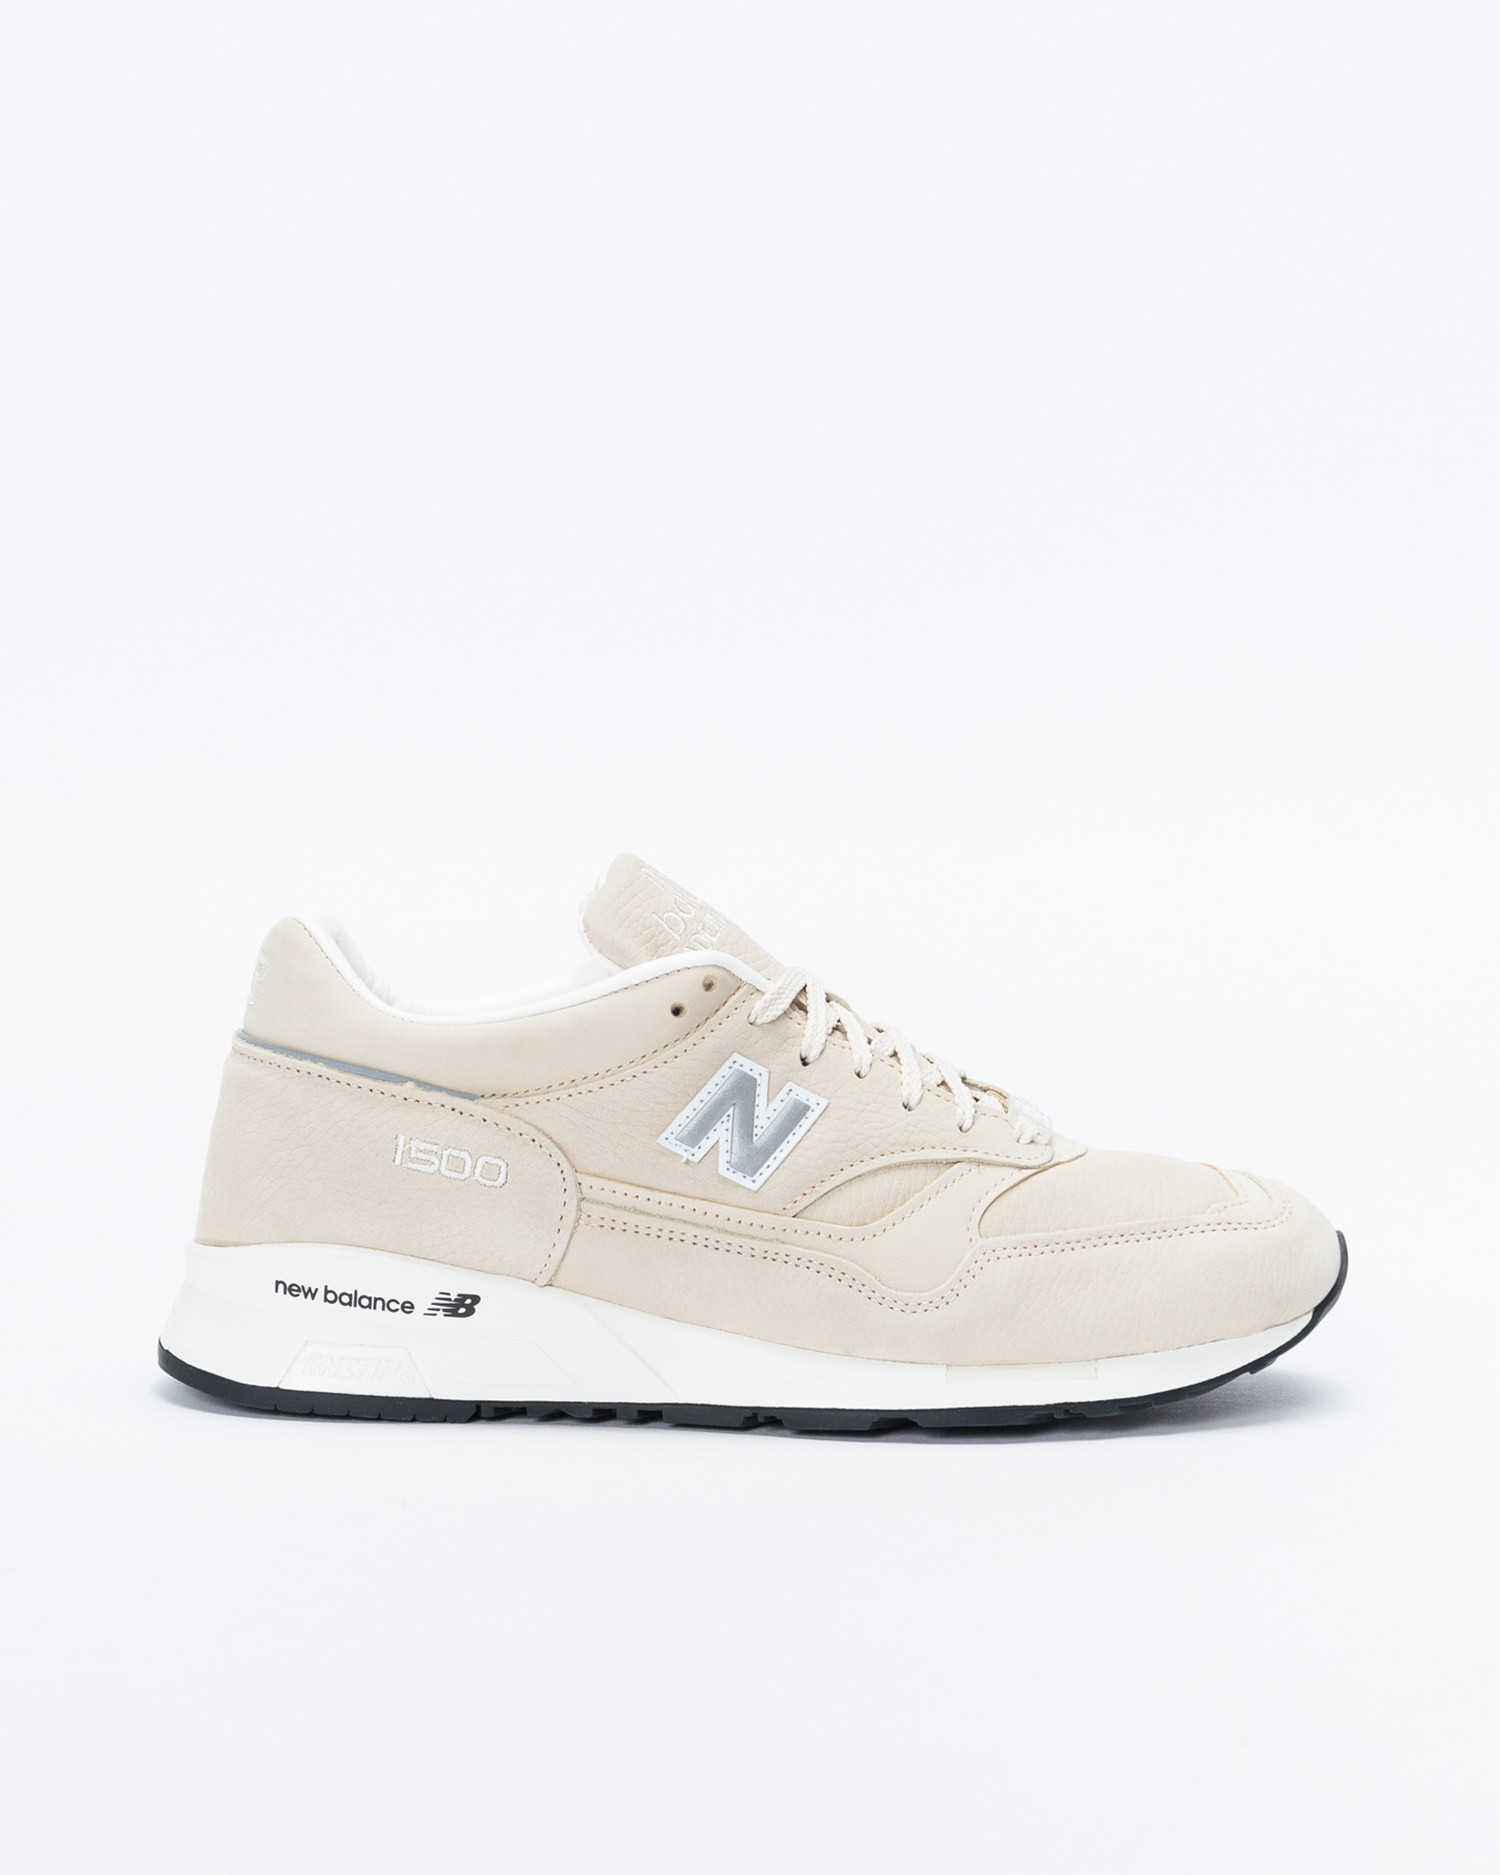 New Balance x Pop Trading Co M1500 Offwhite